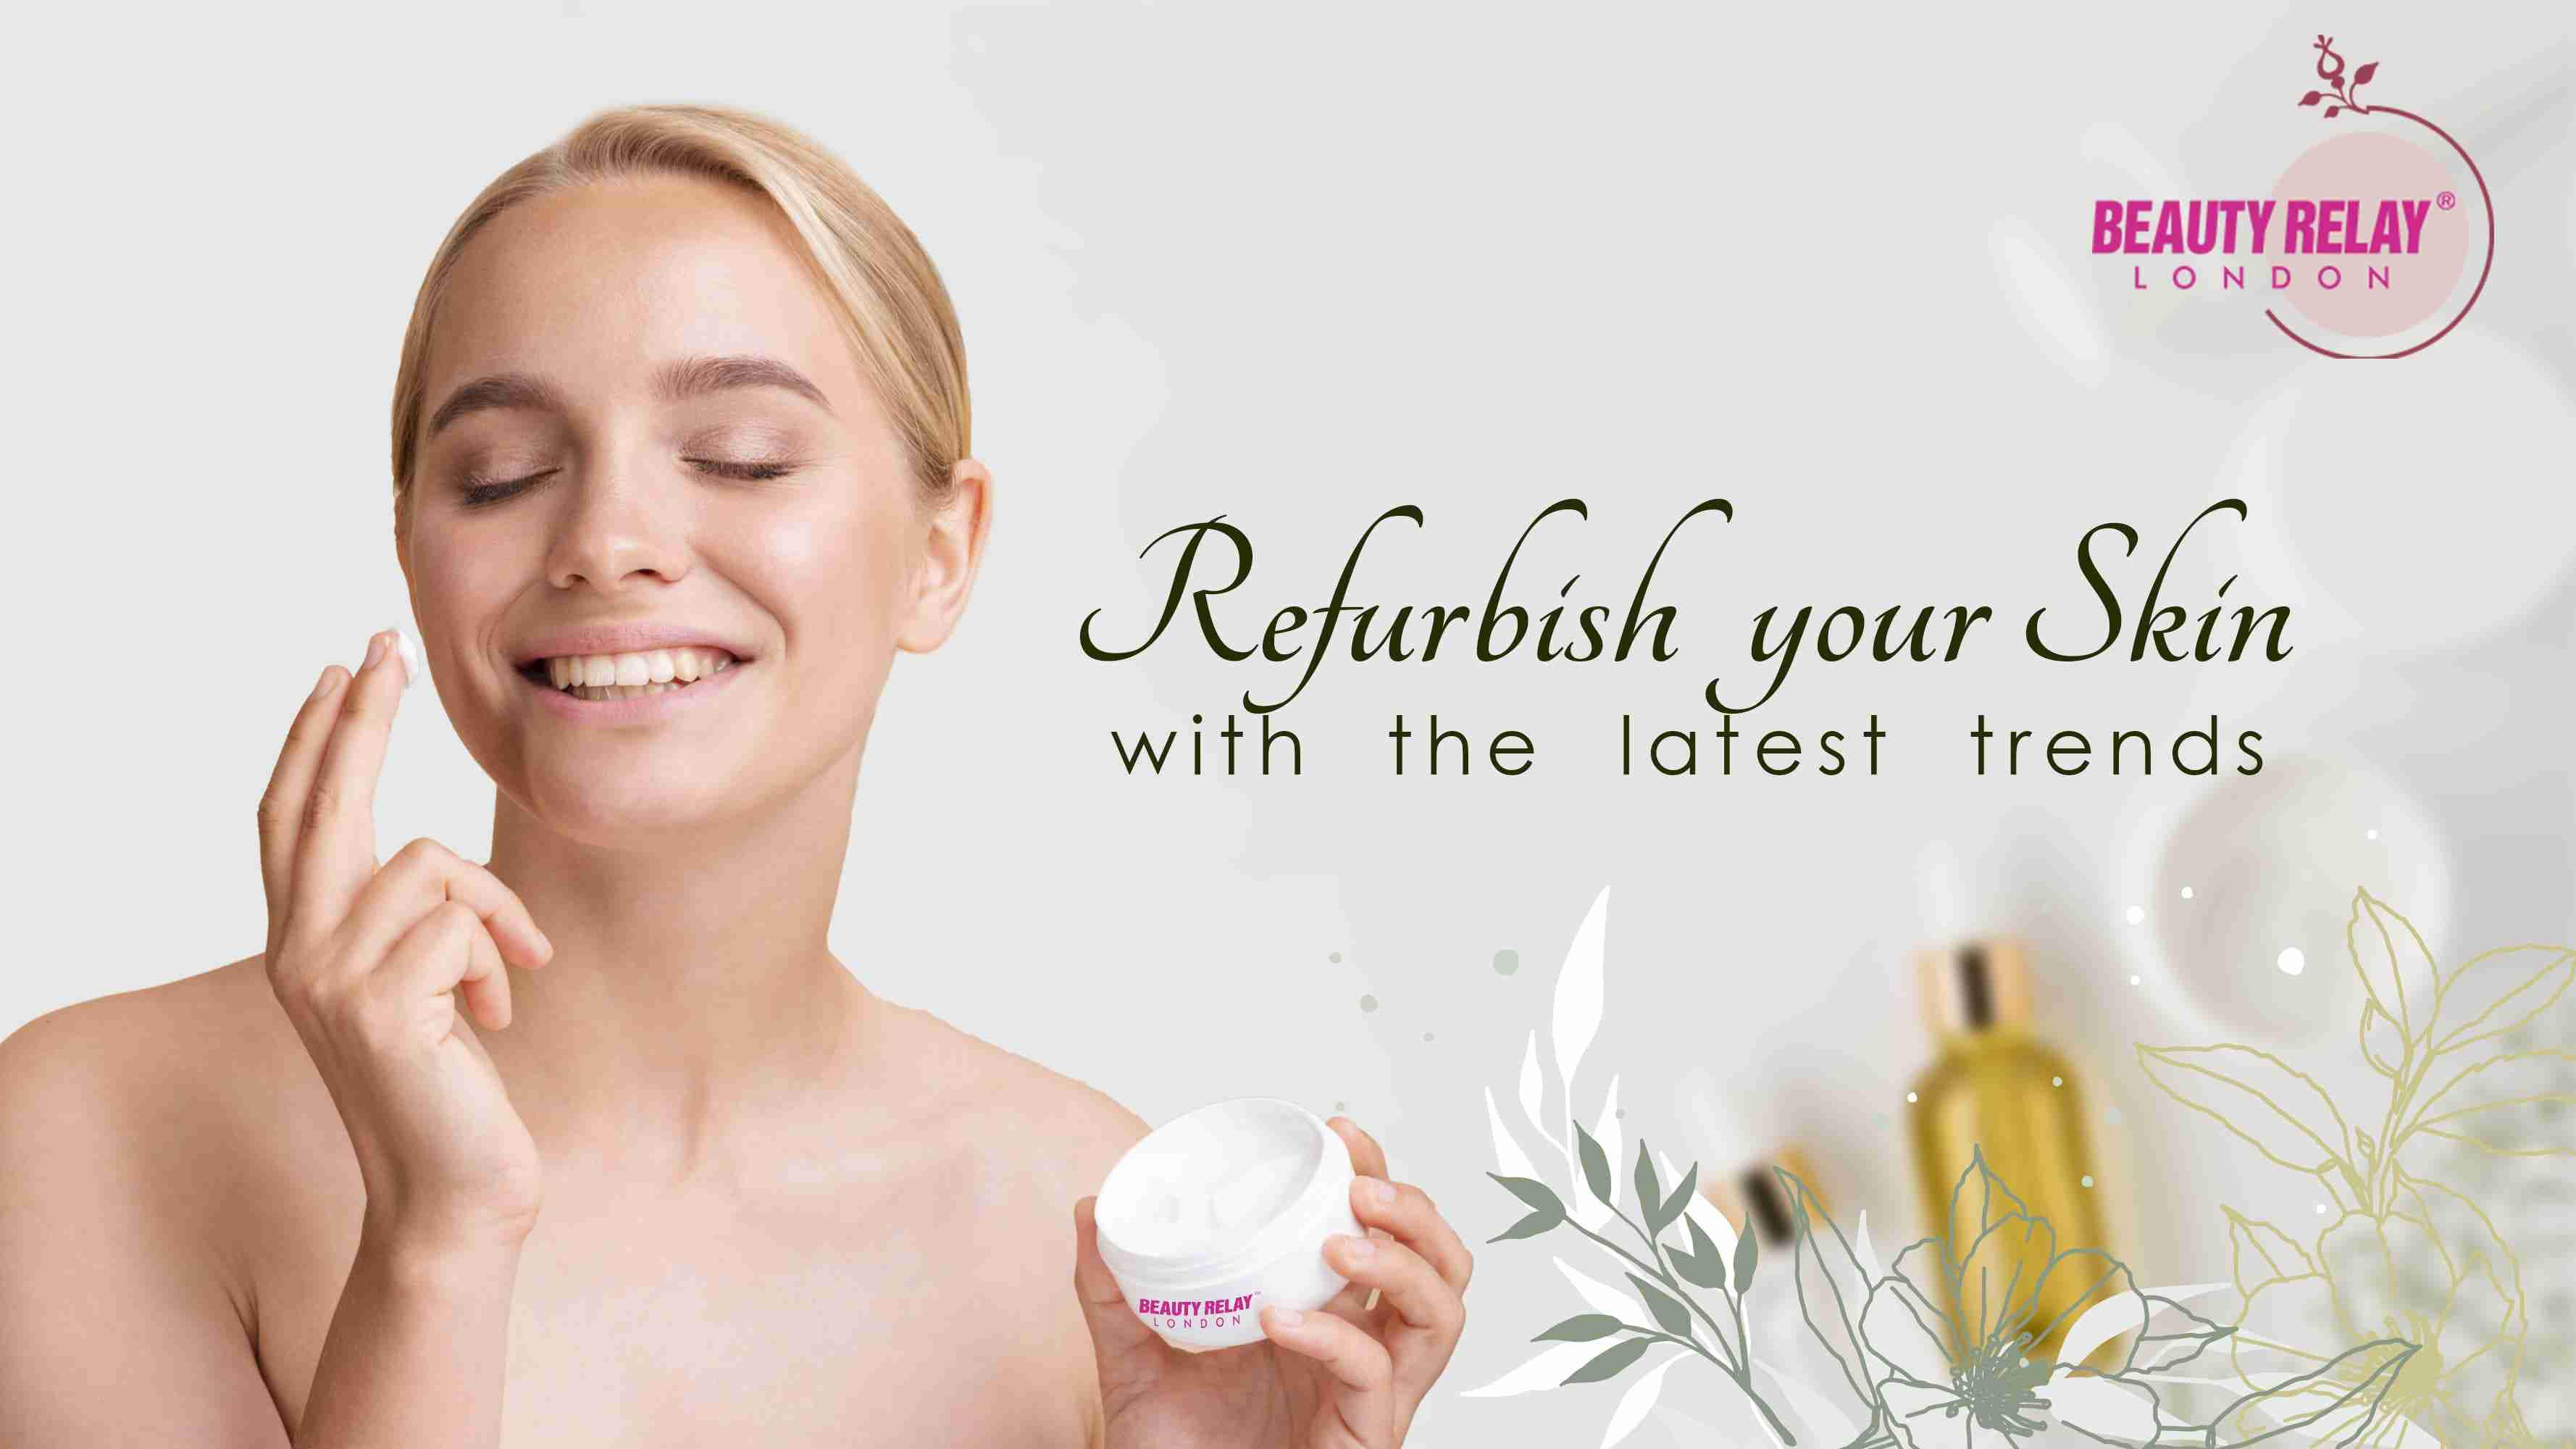 REFURBISH YOUR SKIN WITH THE LATEST TRENDS WITH BEAUTY RELAY